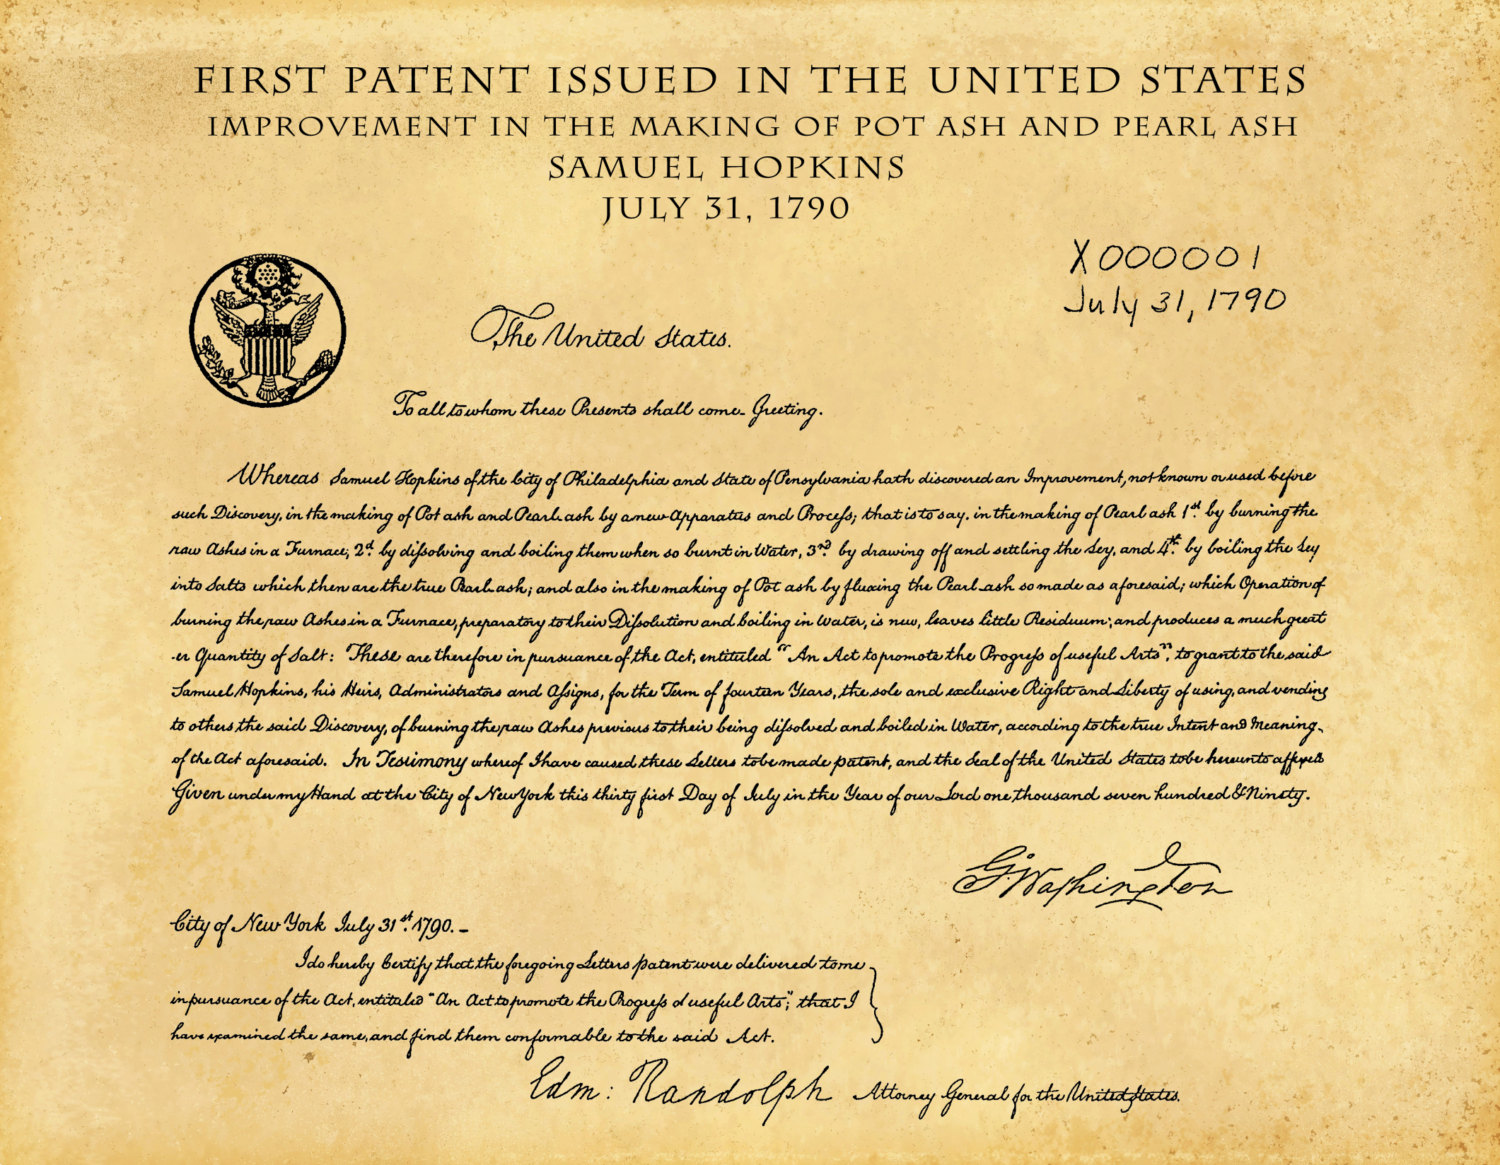 sursa imaginii https://www.bluemoonpatentprints.com/listing/240584993/patent-1790-first-us-patent-issued-by